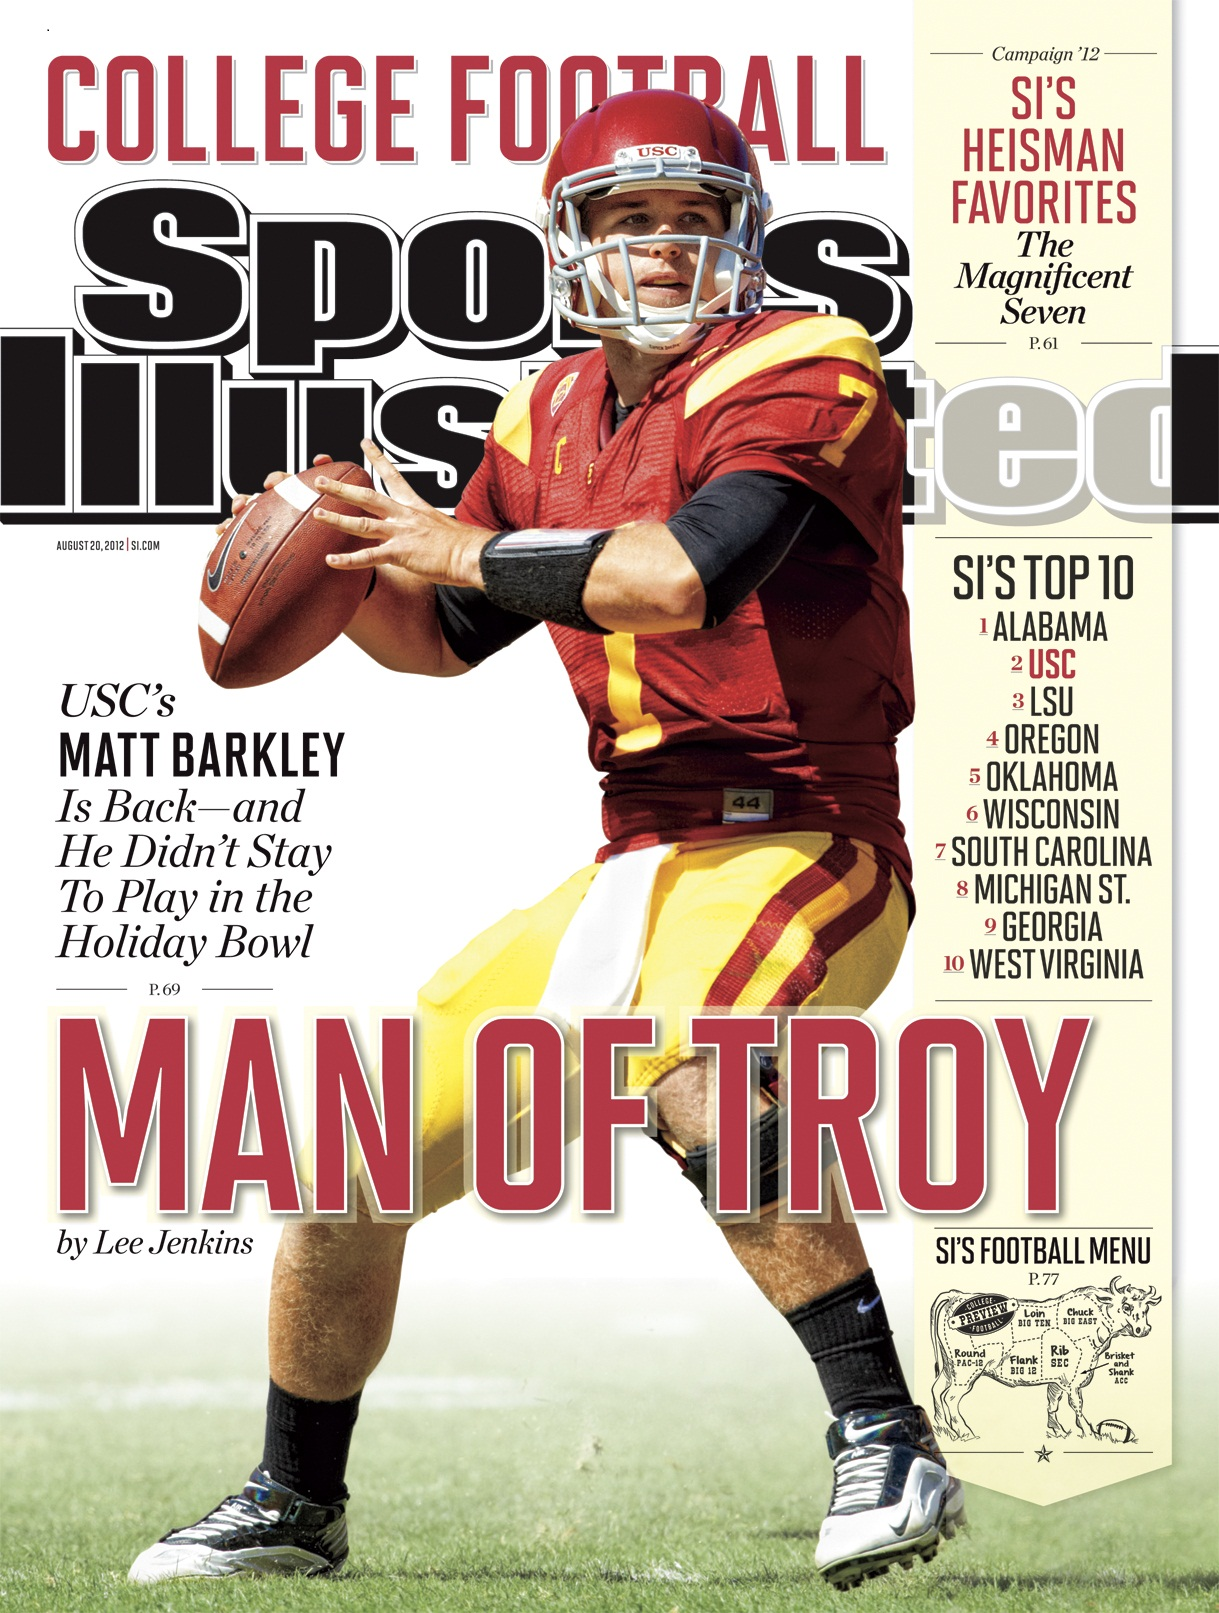 61734-SI_College_Football_Preview_-_USC_Cover.jpg